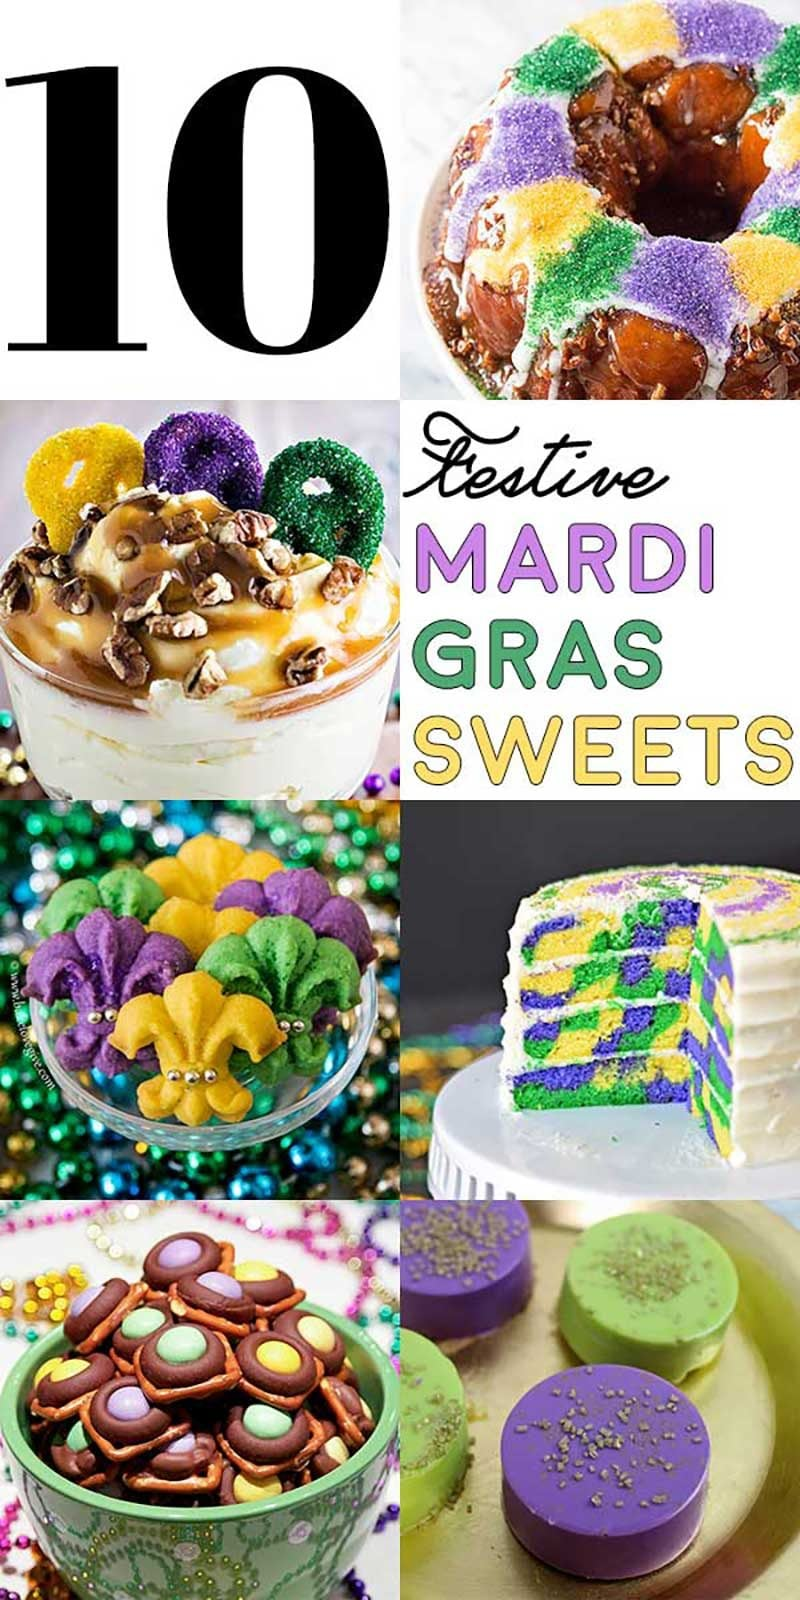 10 Festive Mardi Gras Sweets! A collection of 10 desserts that bring all the festive colors of Mardi Gras (purple, green, and yellow) that you can handle! | HomemadeHooplah.com